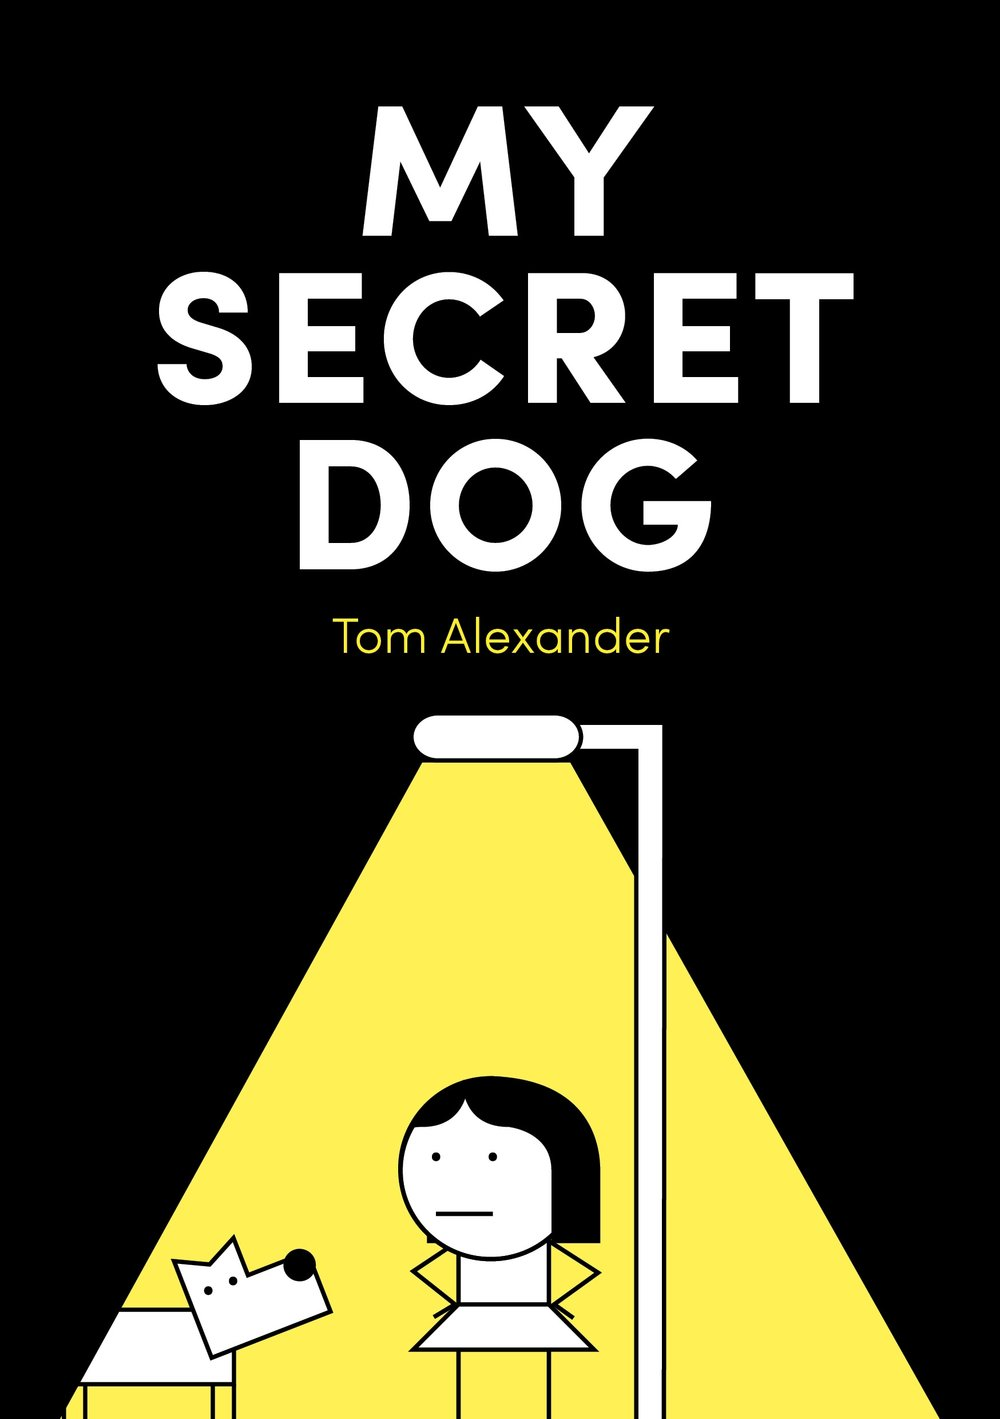 My Secret Dog cover - text is Sofia Pro BOLD.jpg